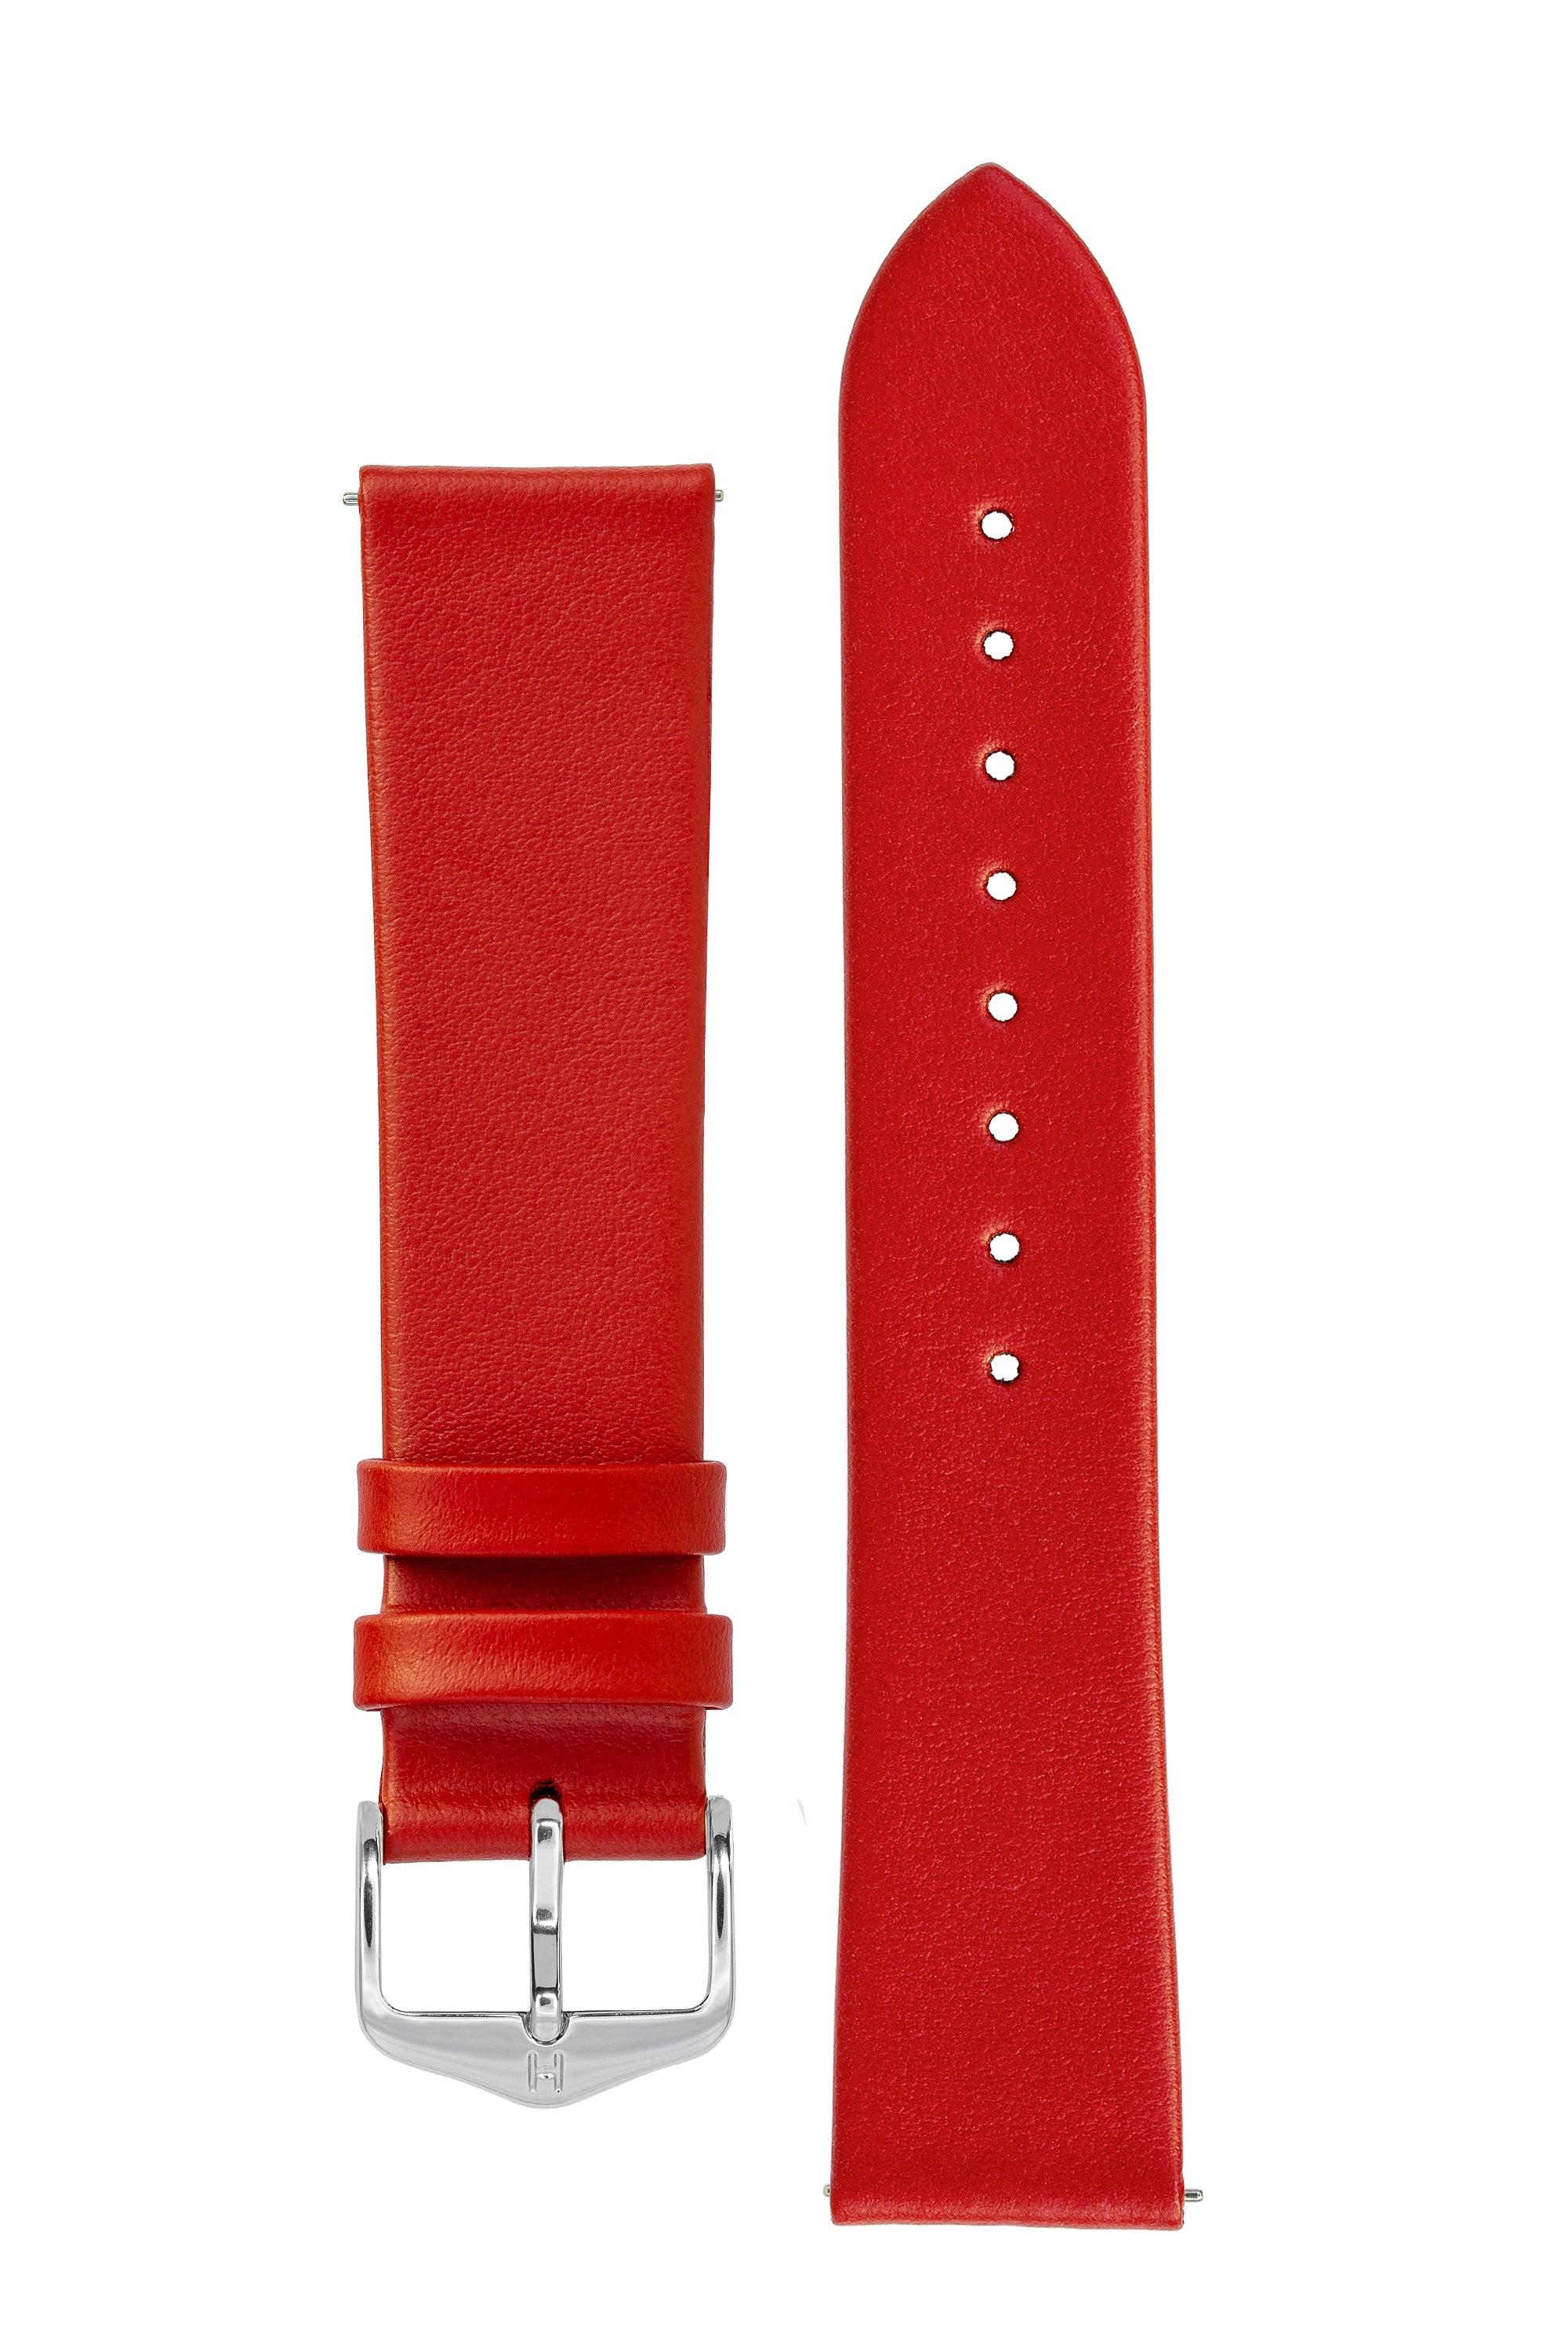 Hirsch TORONTO Fine-Grained Leather Watch Strap in RED